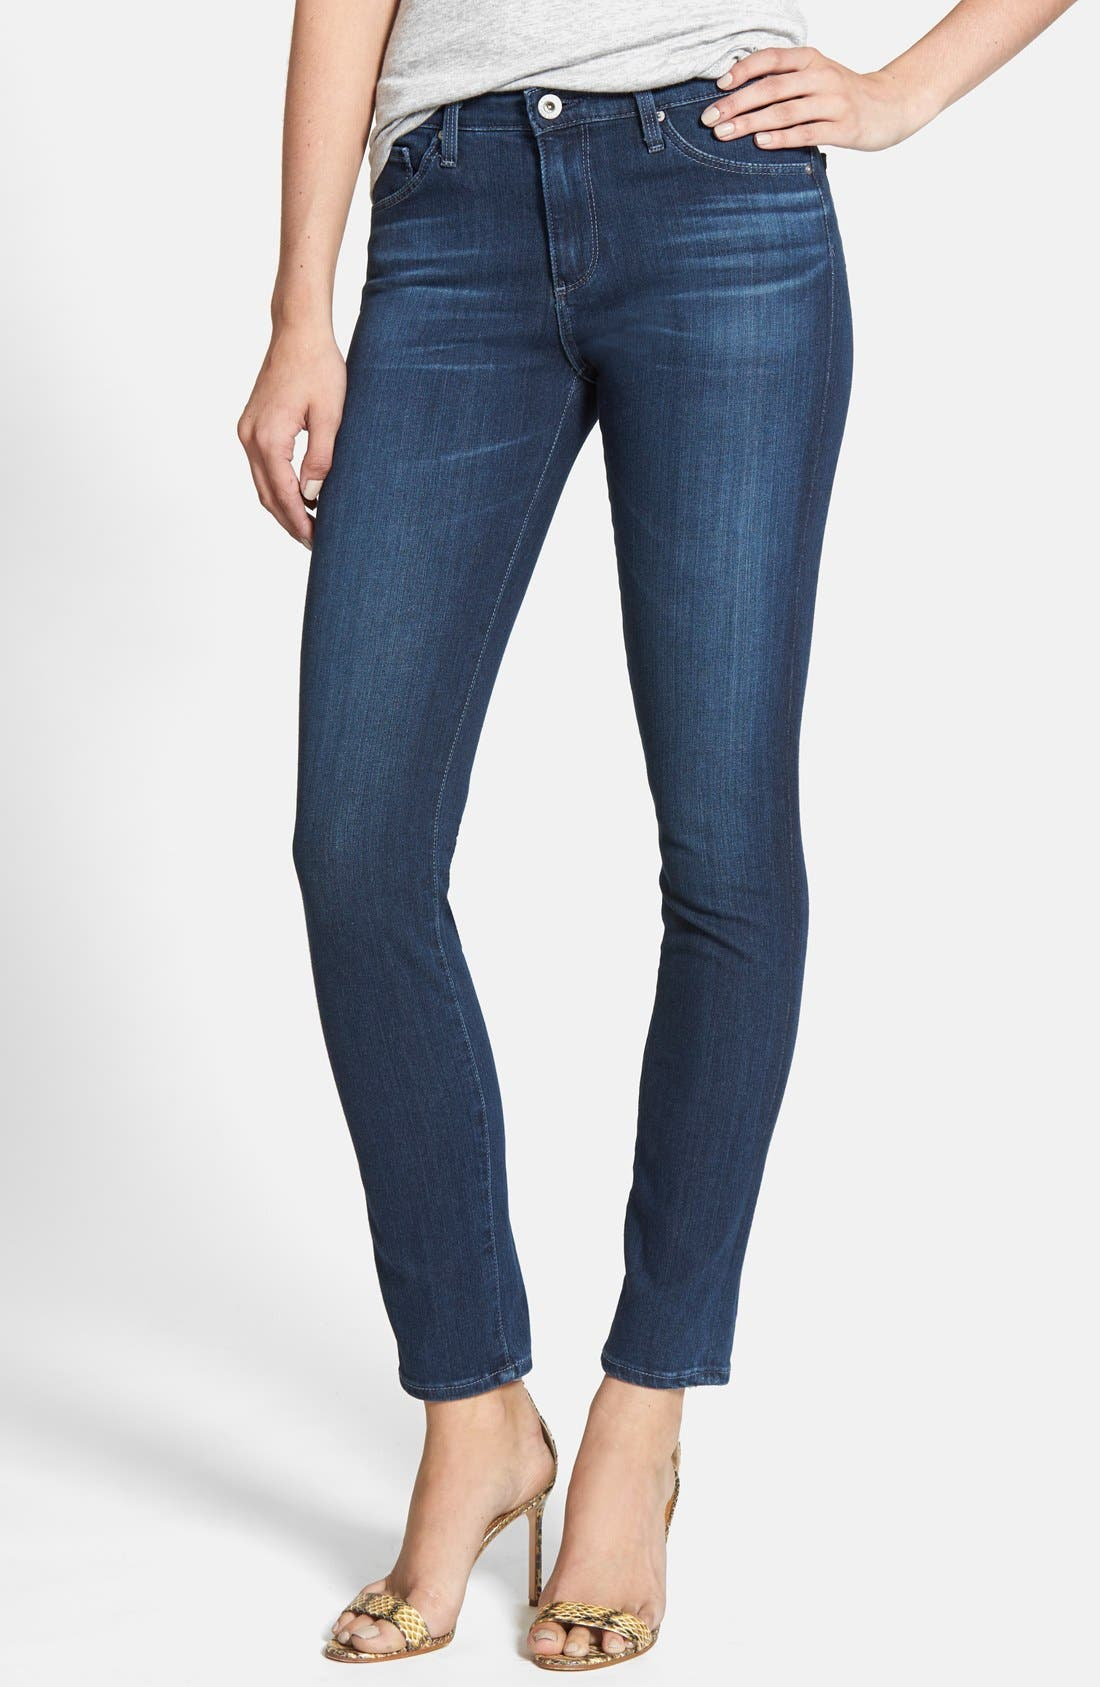 Alternate Image 1 Selected - AG 'Contour 360 - The Prima' Cigarette Leg Skinny Jeans